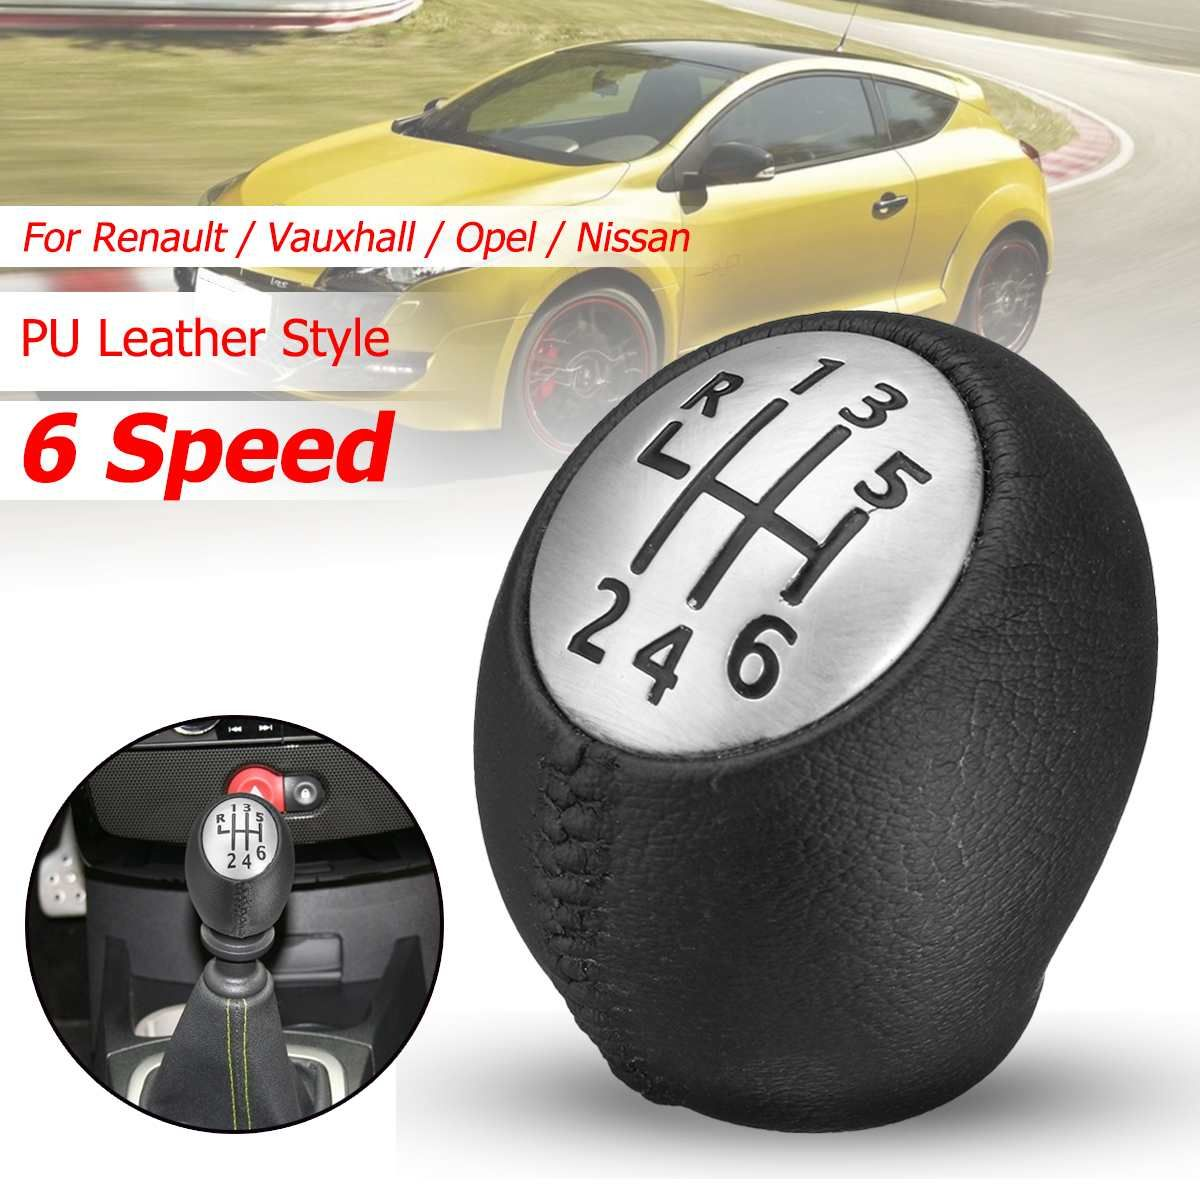 6 Speed PU Leather Gear Shift Shifter Knob Lever Stick for Renault Megane Clio Laguna Scenic For Vauxhall Opel